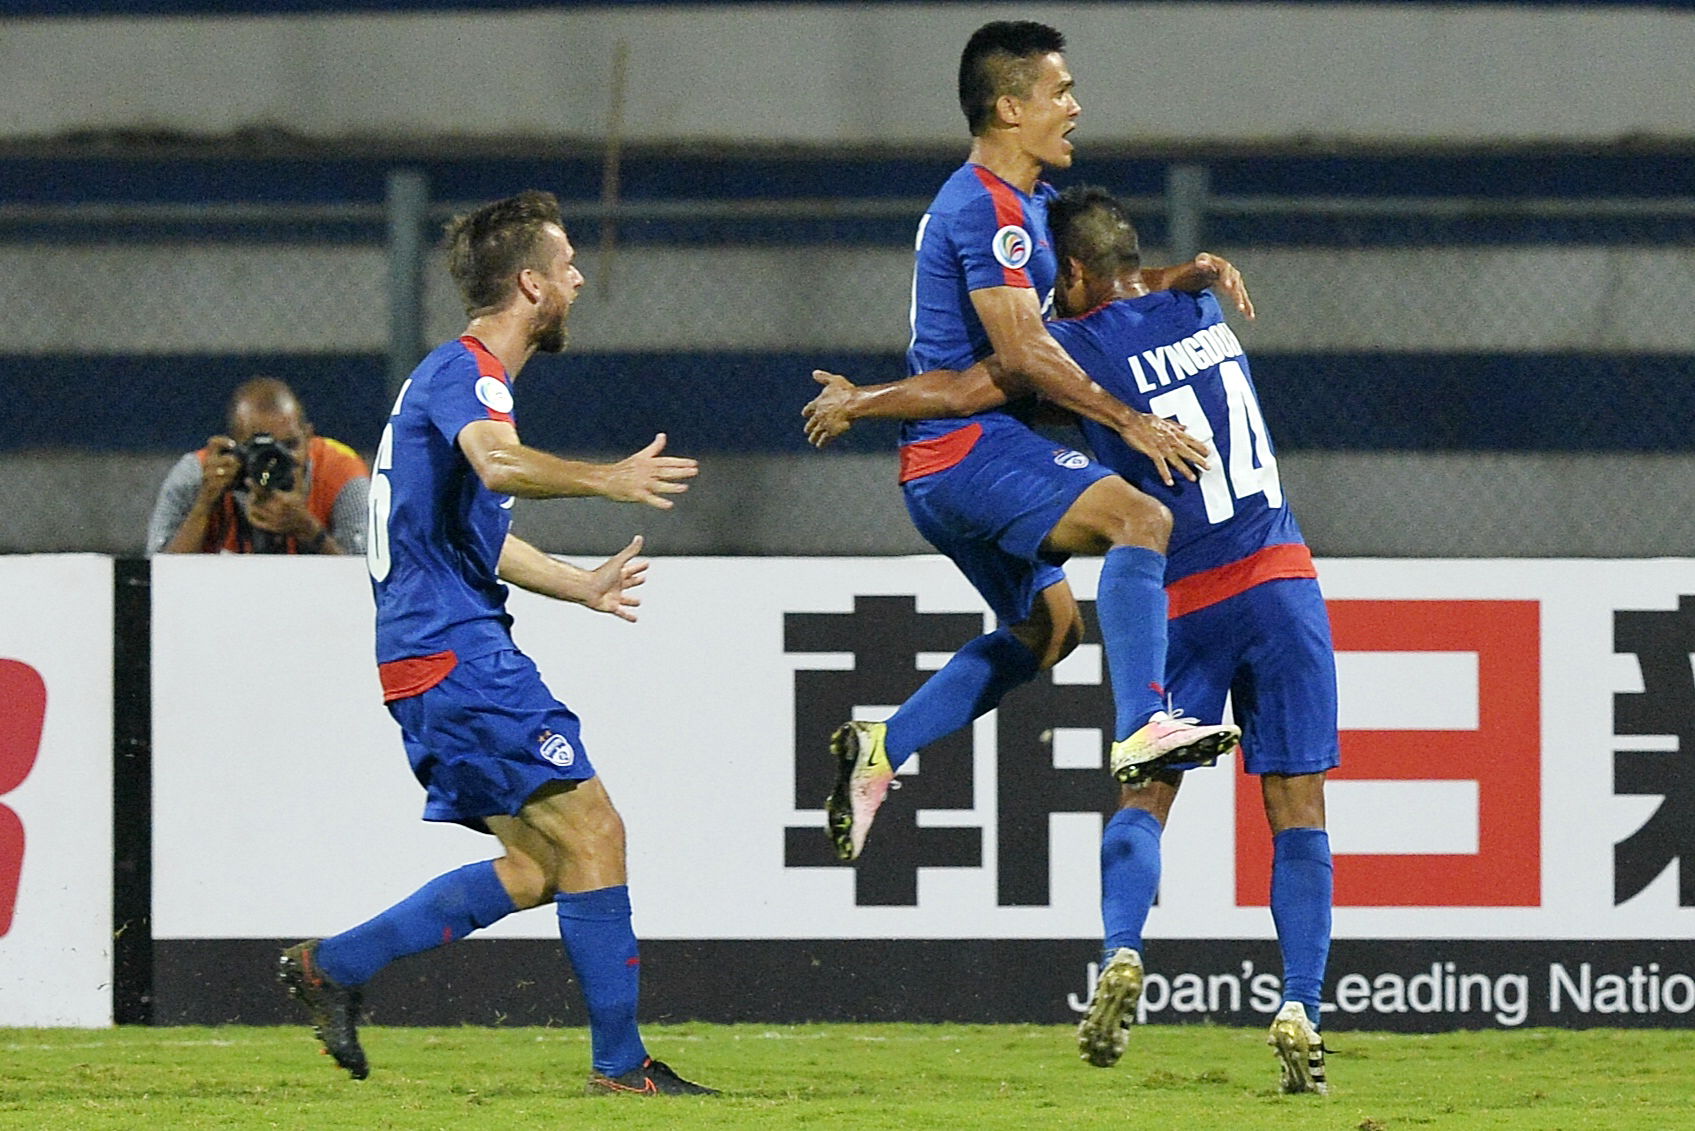 Bengaluru's captain Sunil Chhetri (C) celebrates with his teammates after scoring during the 2016 Asian Football Confederation (AFC) Cup semi-final second leg football match between Bengaluru FC and Johor Darul Ta'zim at the Shree Kanteerava stadium in Bangalore, on October 19, 2016. The Sunil-Vineeth-Eugene combination will be the key again for Bengaluru FC / AFP / MANJUNATH KIRAN (Photo credit should read MANJUNATH KIRAN/AFP/Getty Images)